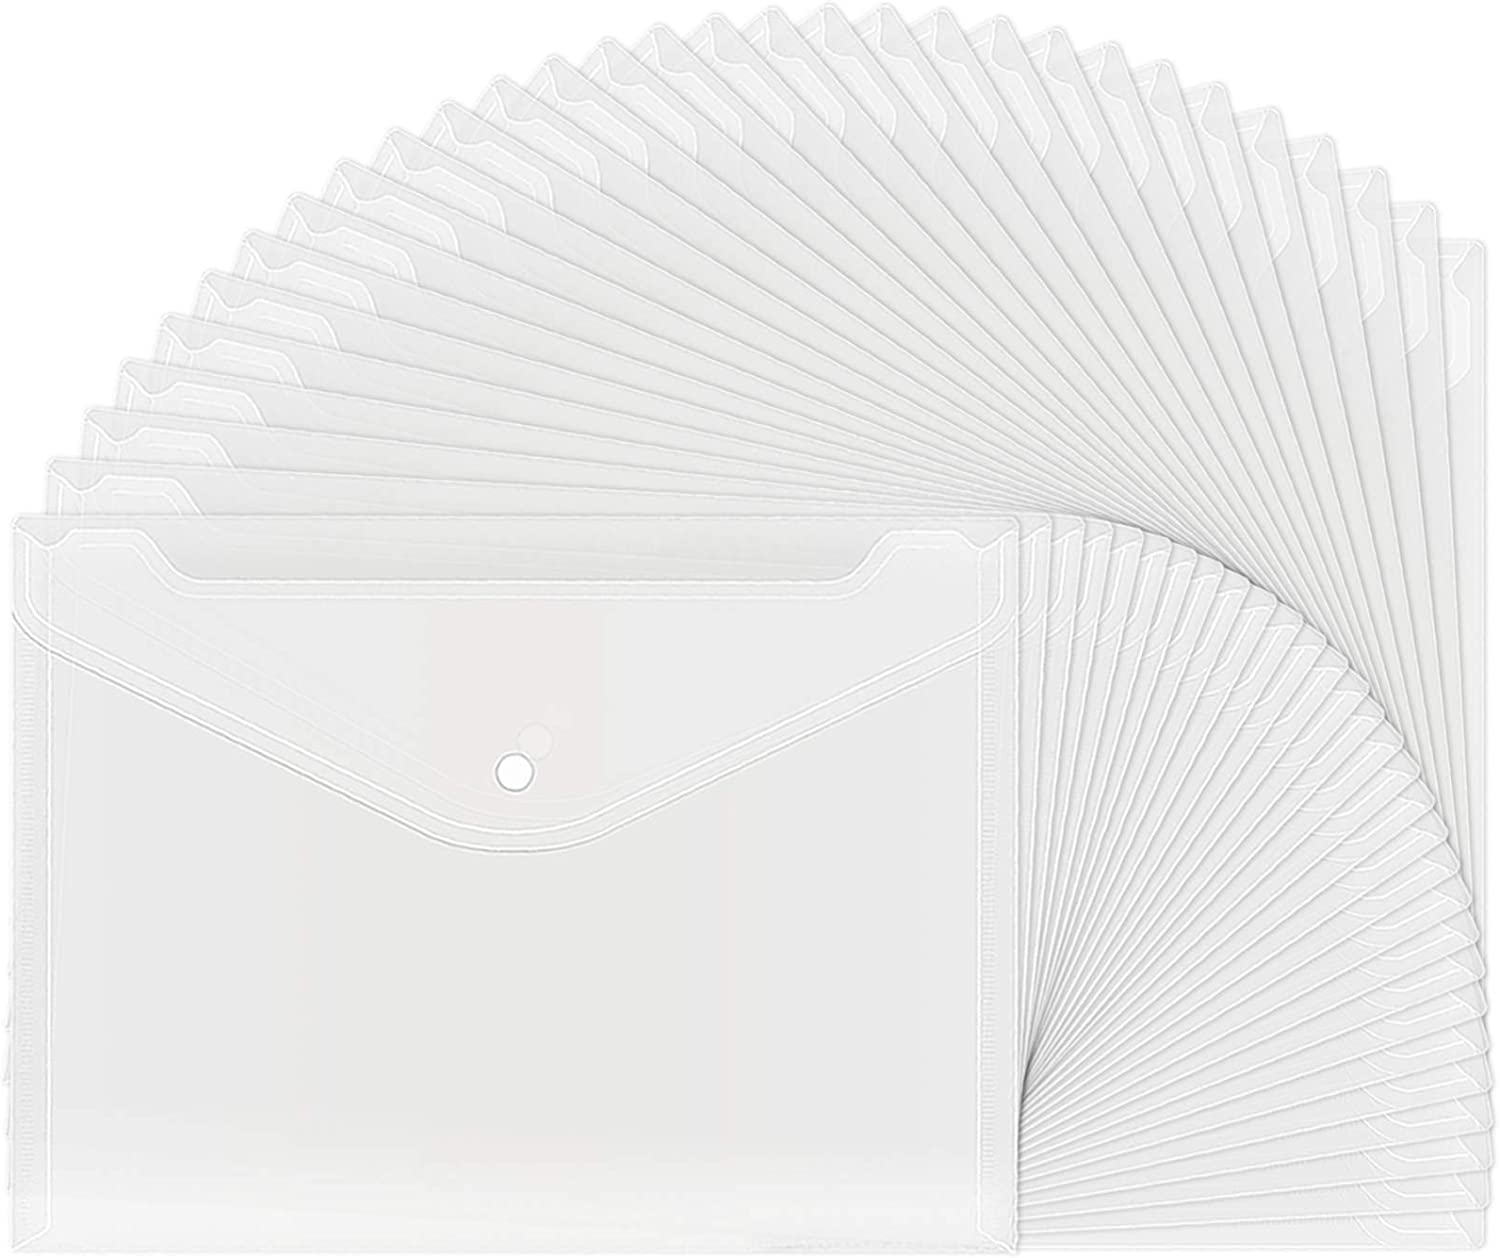 30pcs Deluxe Plastic Envelopes Max 77% OFF Clear Reusable Envelope Poly Waterproof